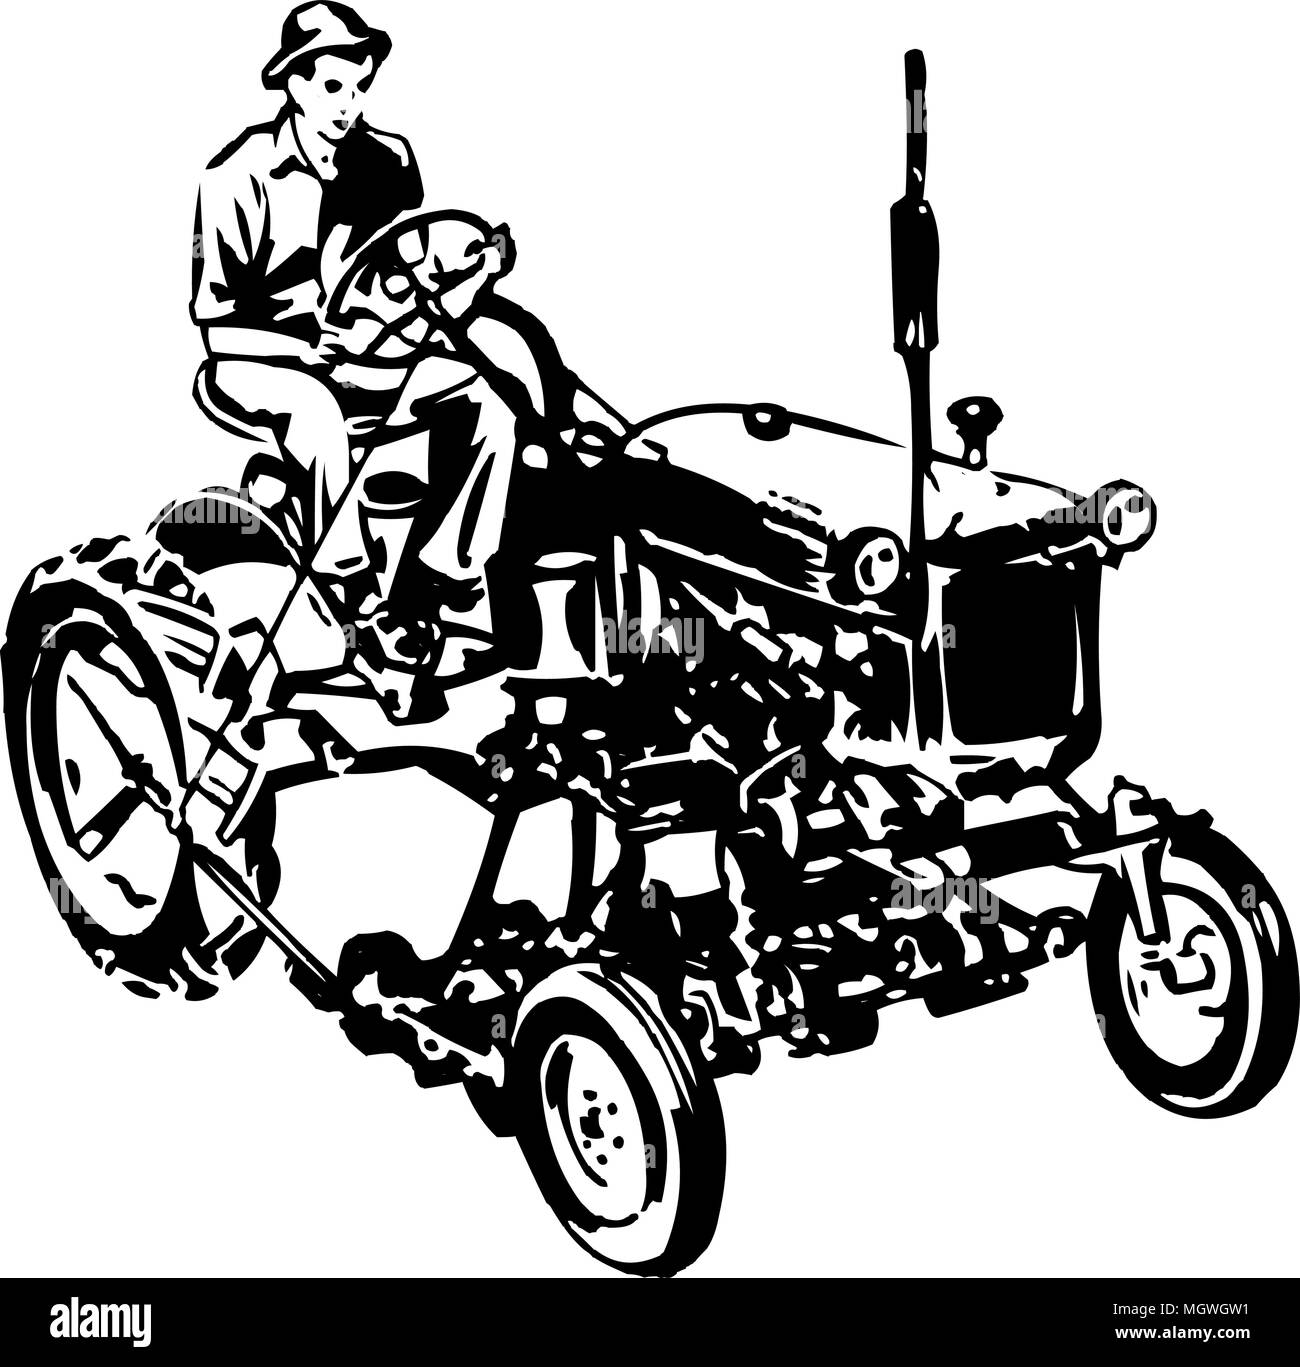 Tractor 1 - Retro Clipart Illustration - Stock Image